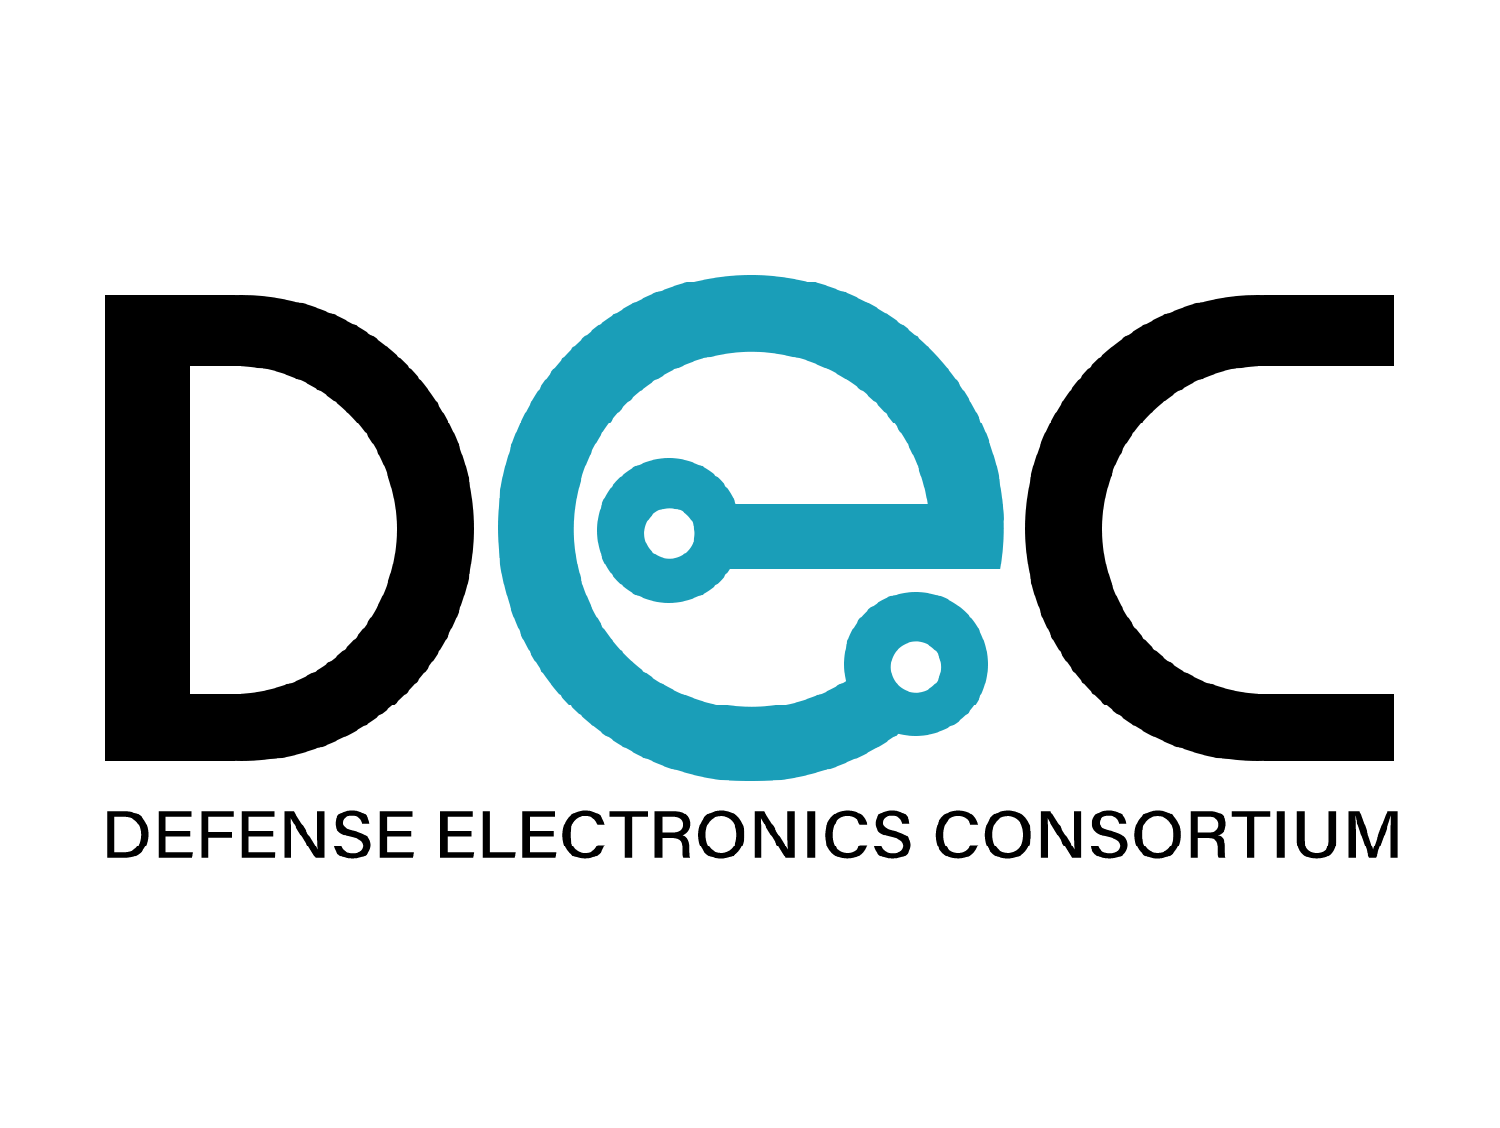 Defense Electronics Consortium (DEC)